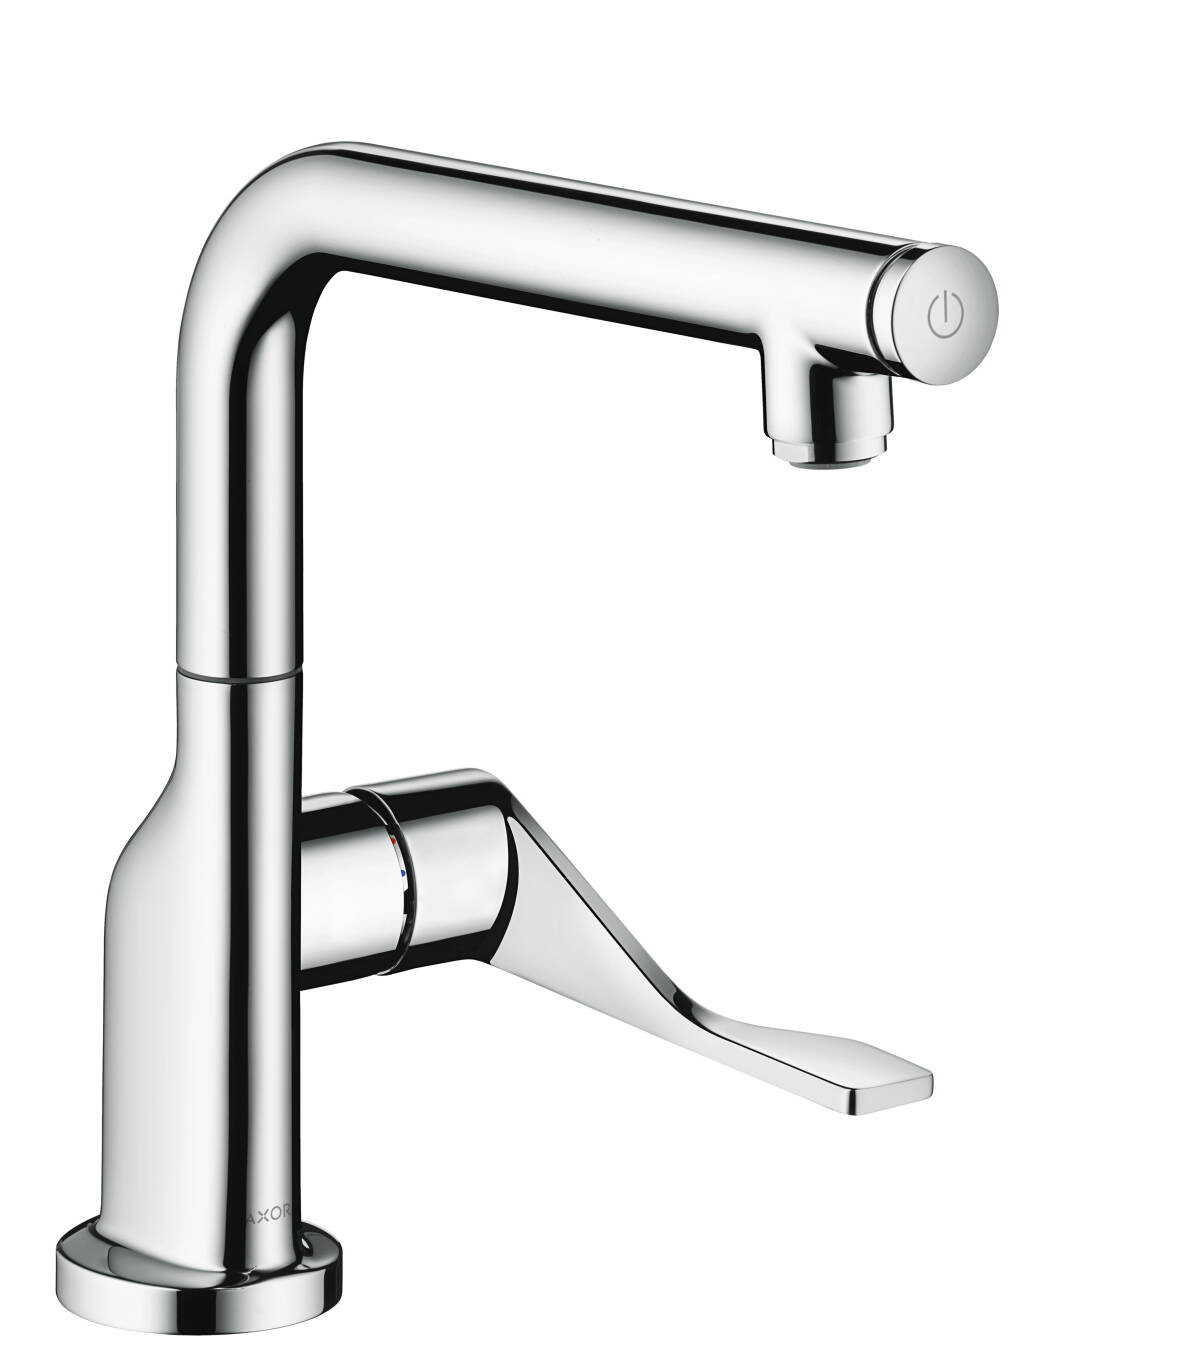 Single lever kitchen mixer Select 230 with swivel spout, Brushed Bronze, 39860140